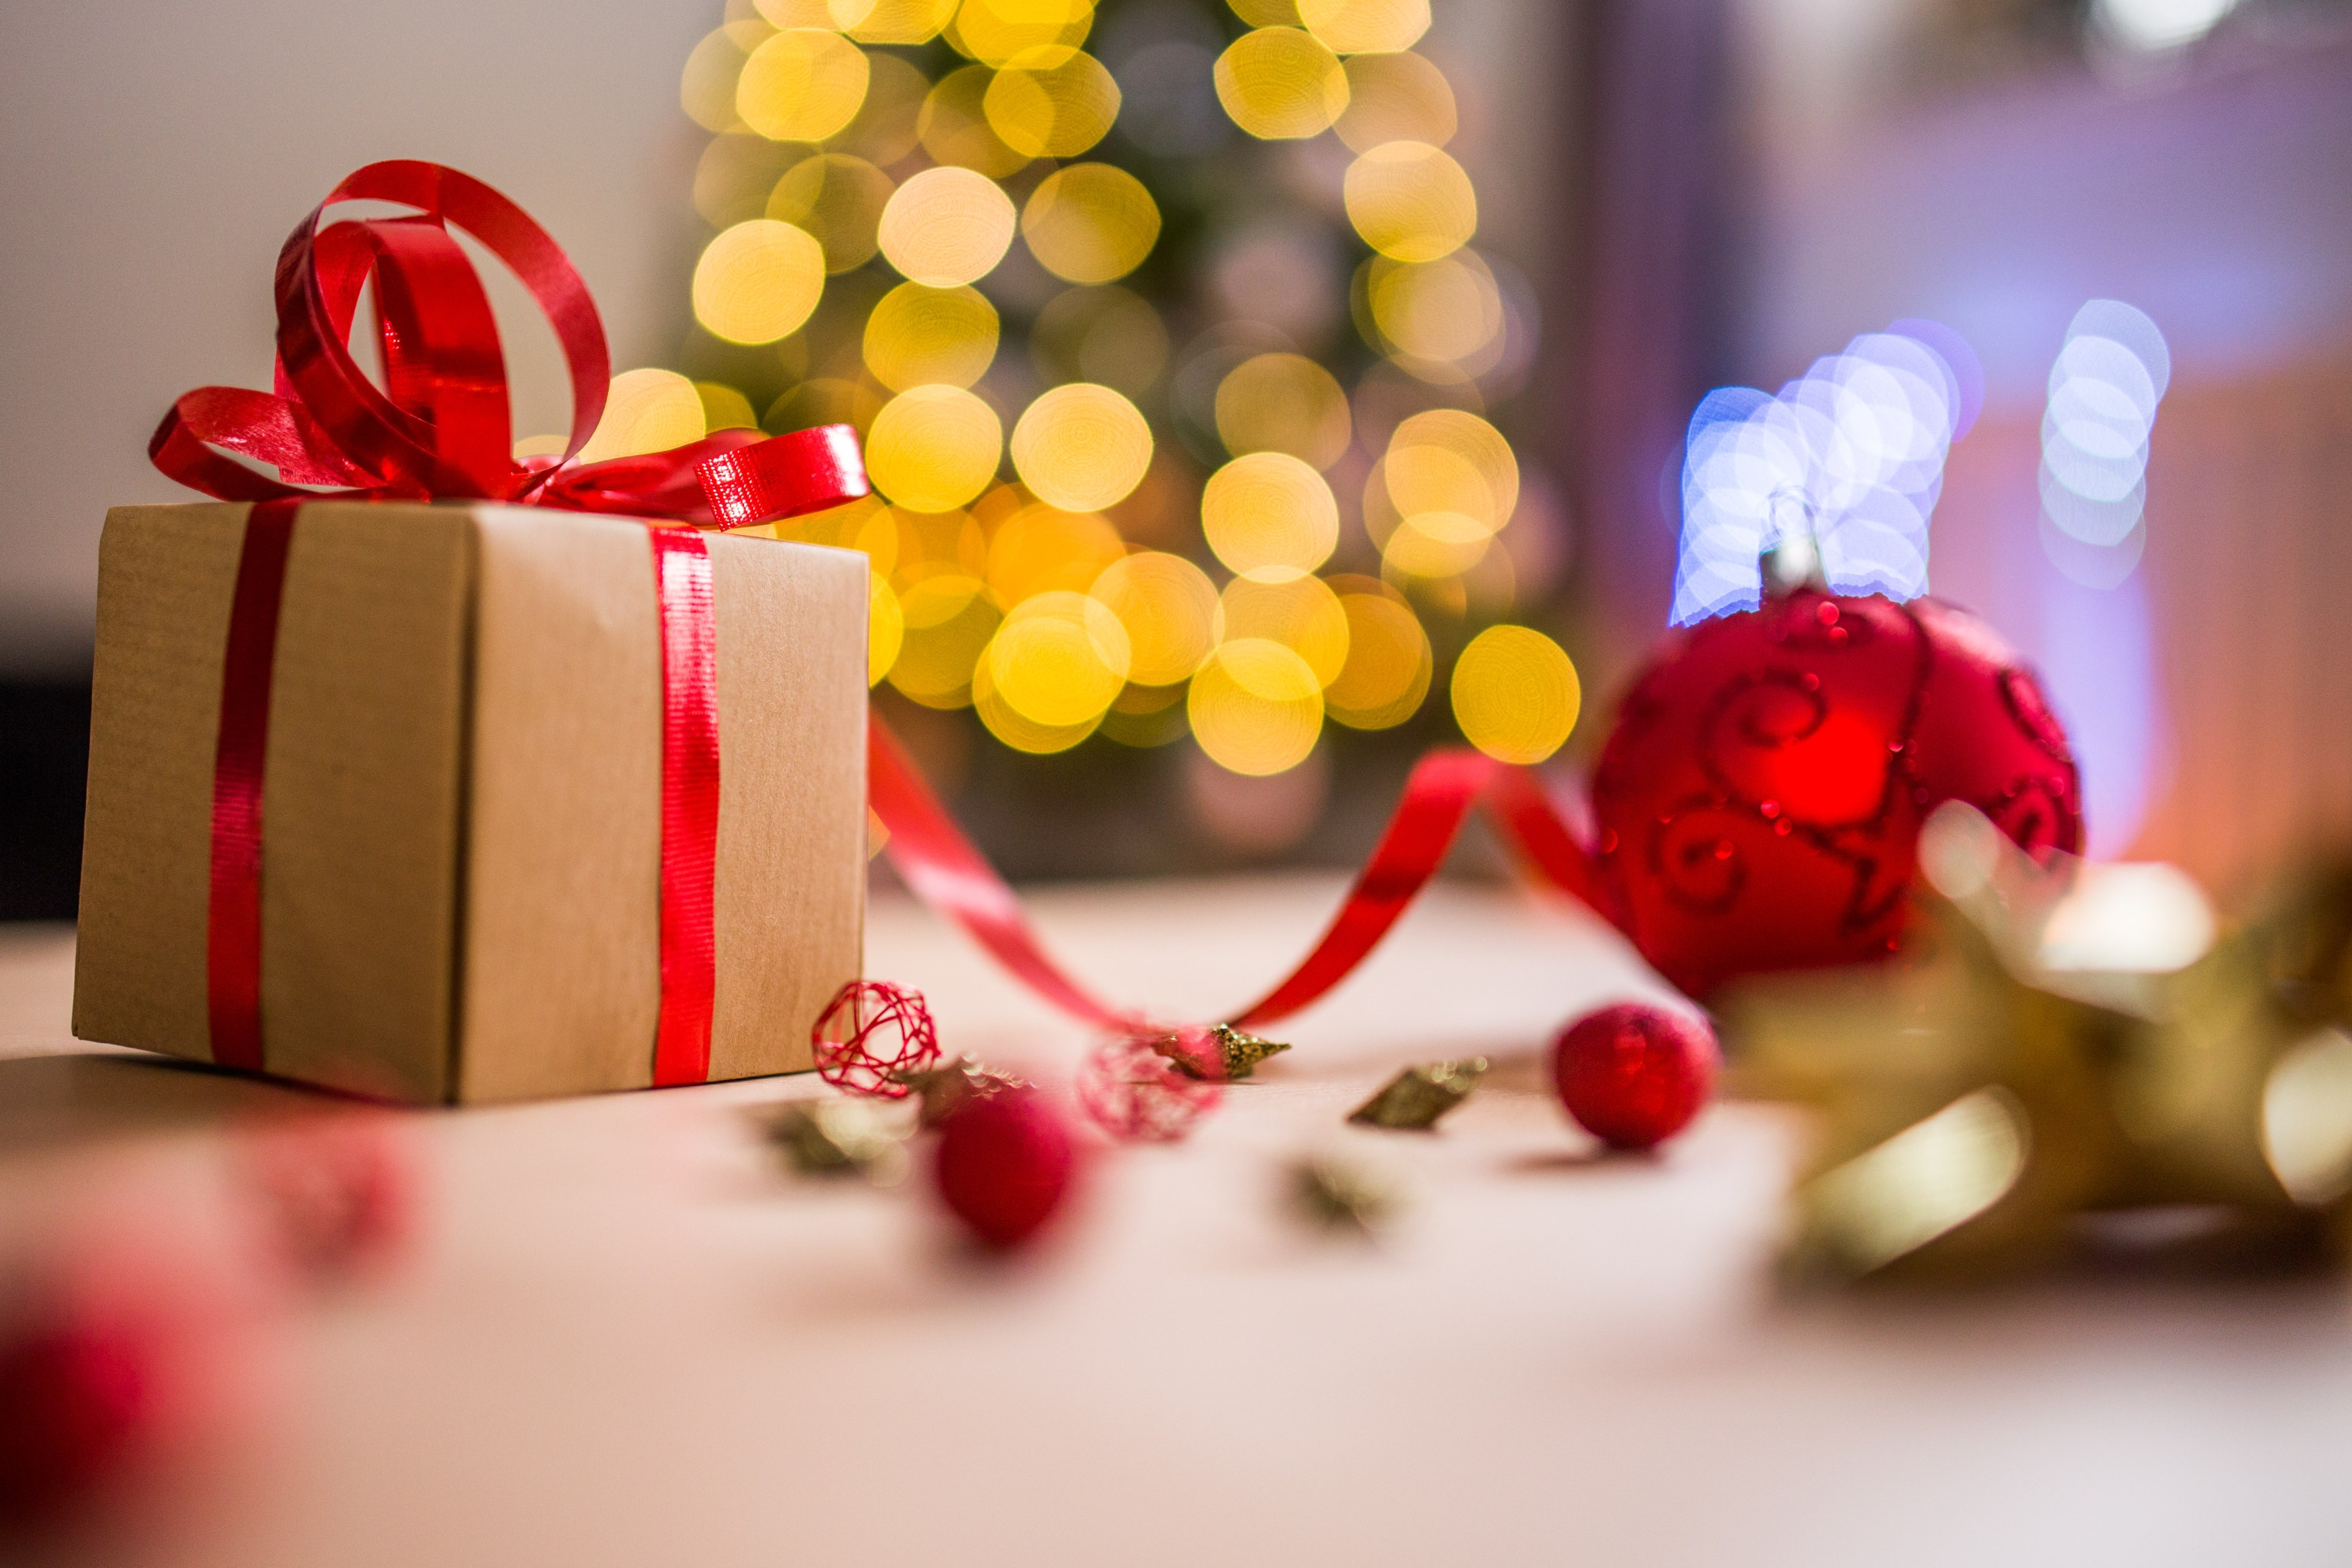 Half of employees don't get a reward or gift from their employer at Christmas